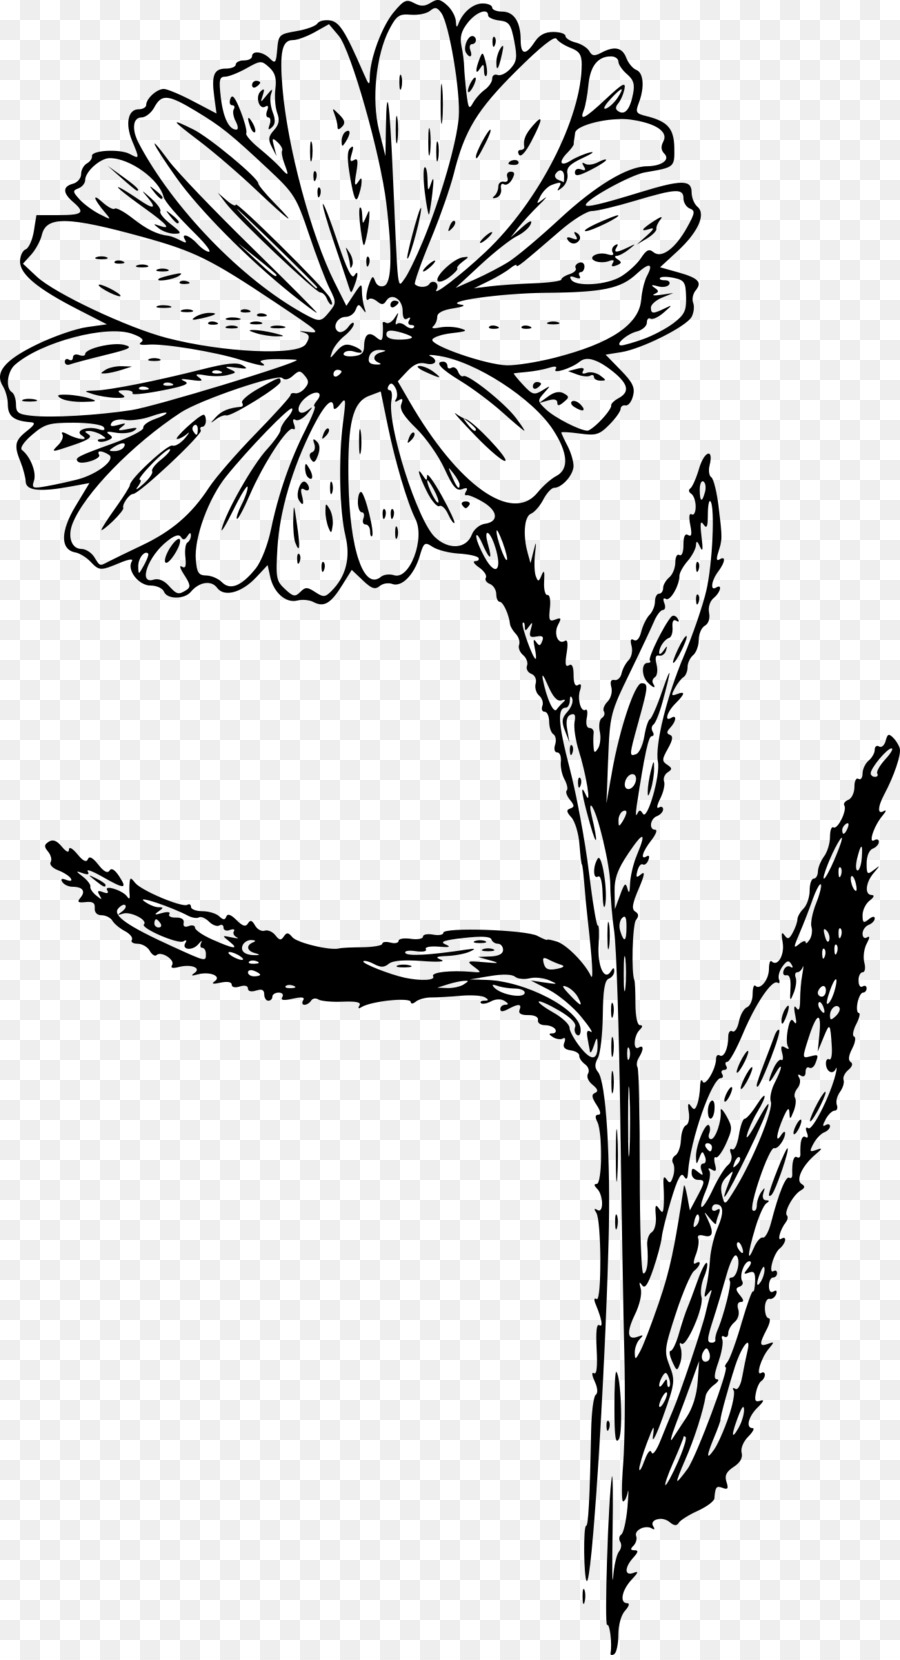 Marigold flower black and white clipart clip royalty free download Black And White Flower clipart - Flower, Drawing, Plant ... clip royalty free download